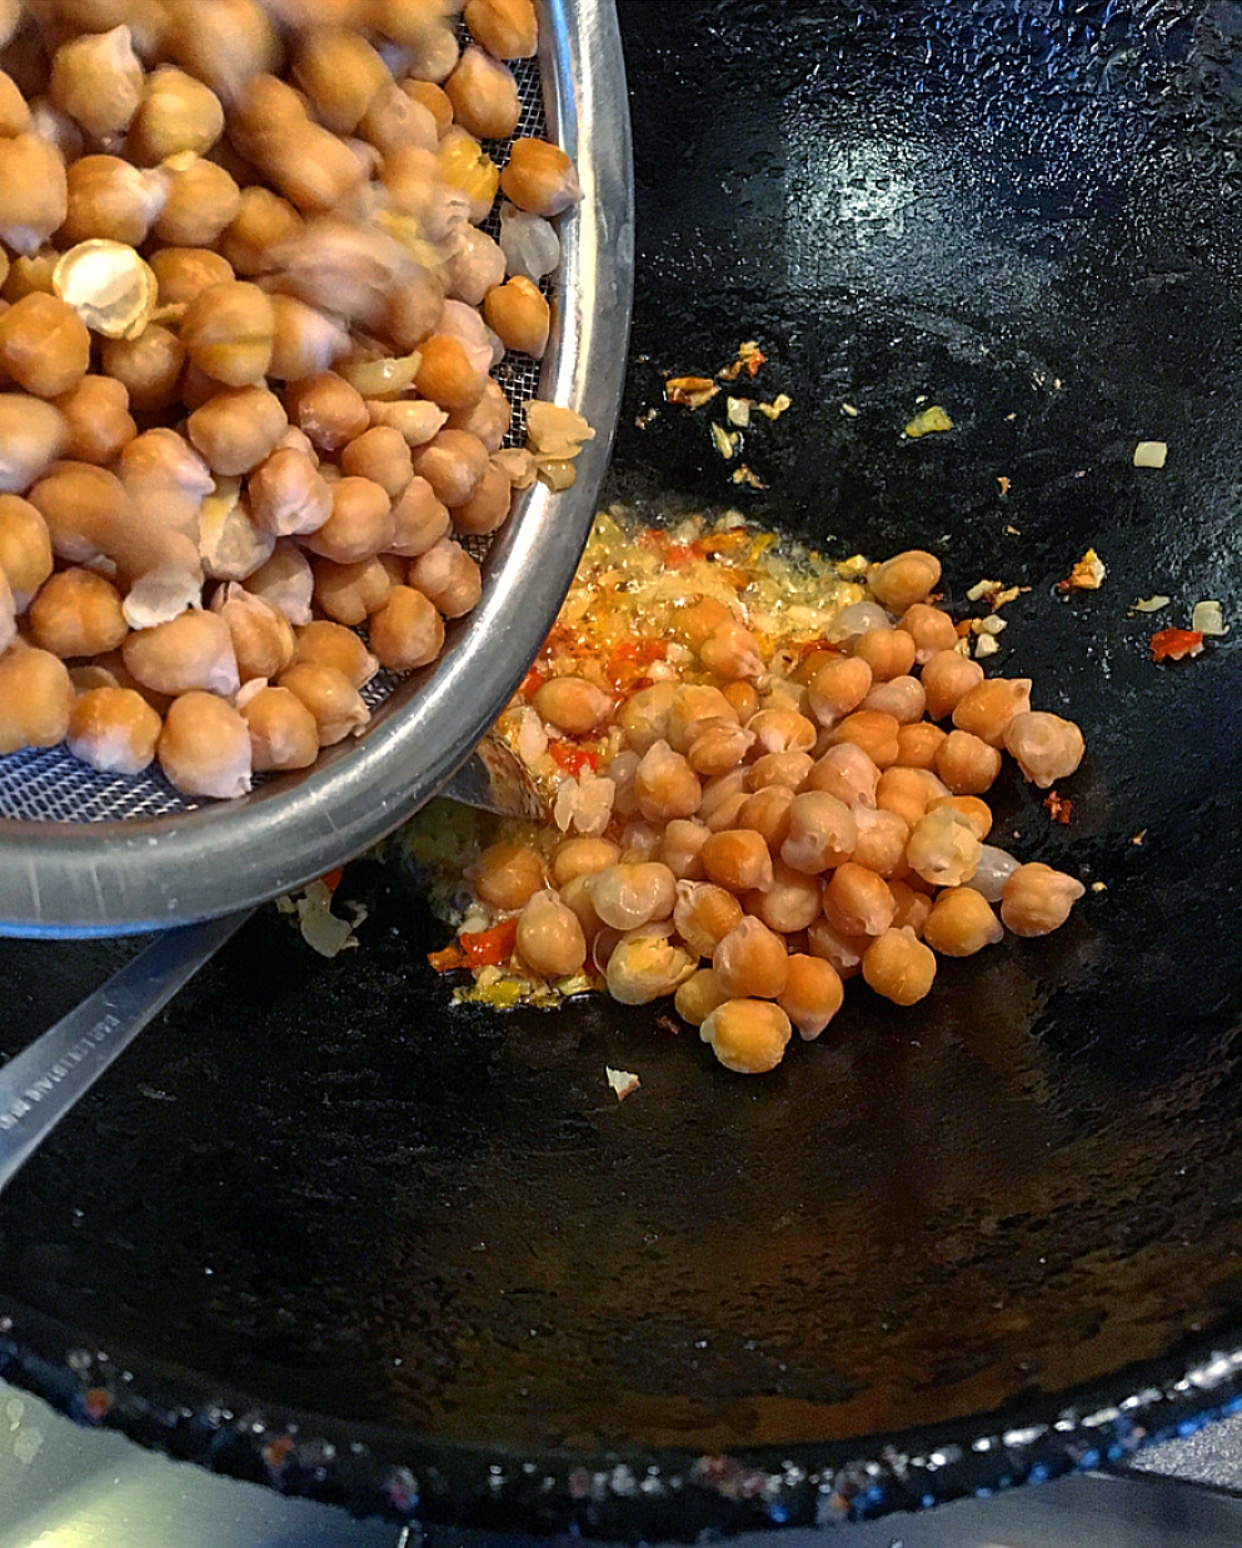 When the garlic and onion mixture are light brown add the chickpeas.